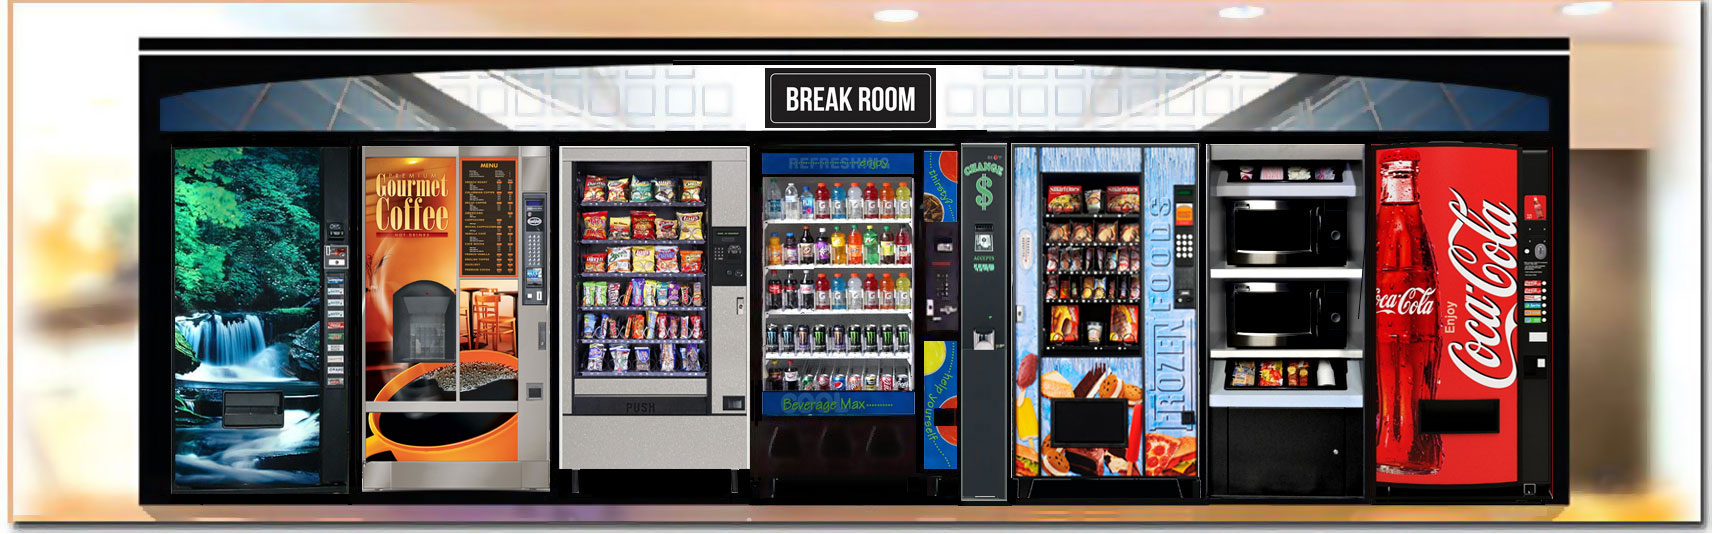 refurbished vending machines | vending world | official site